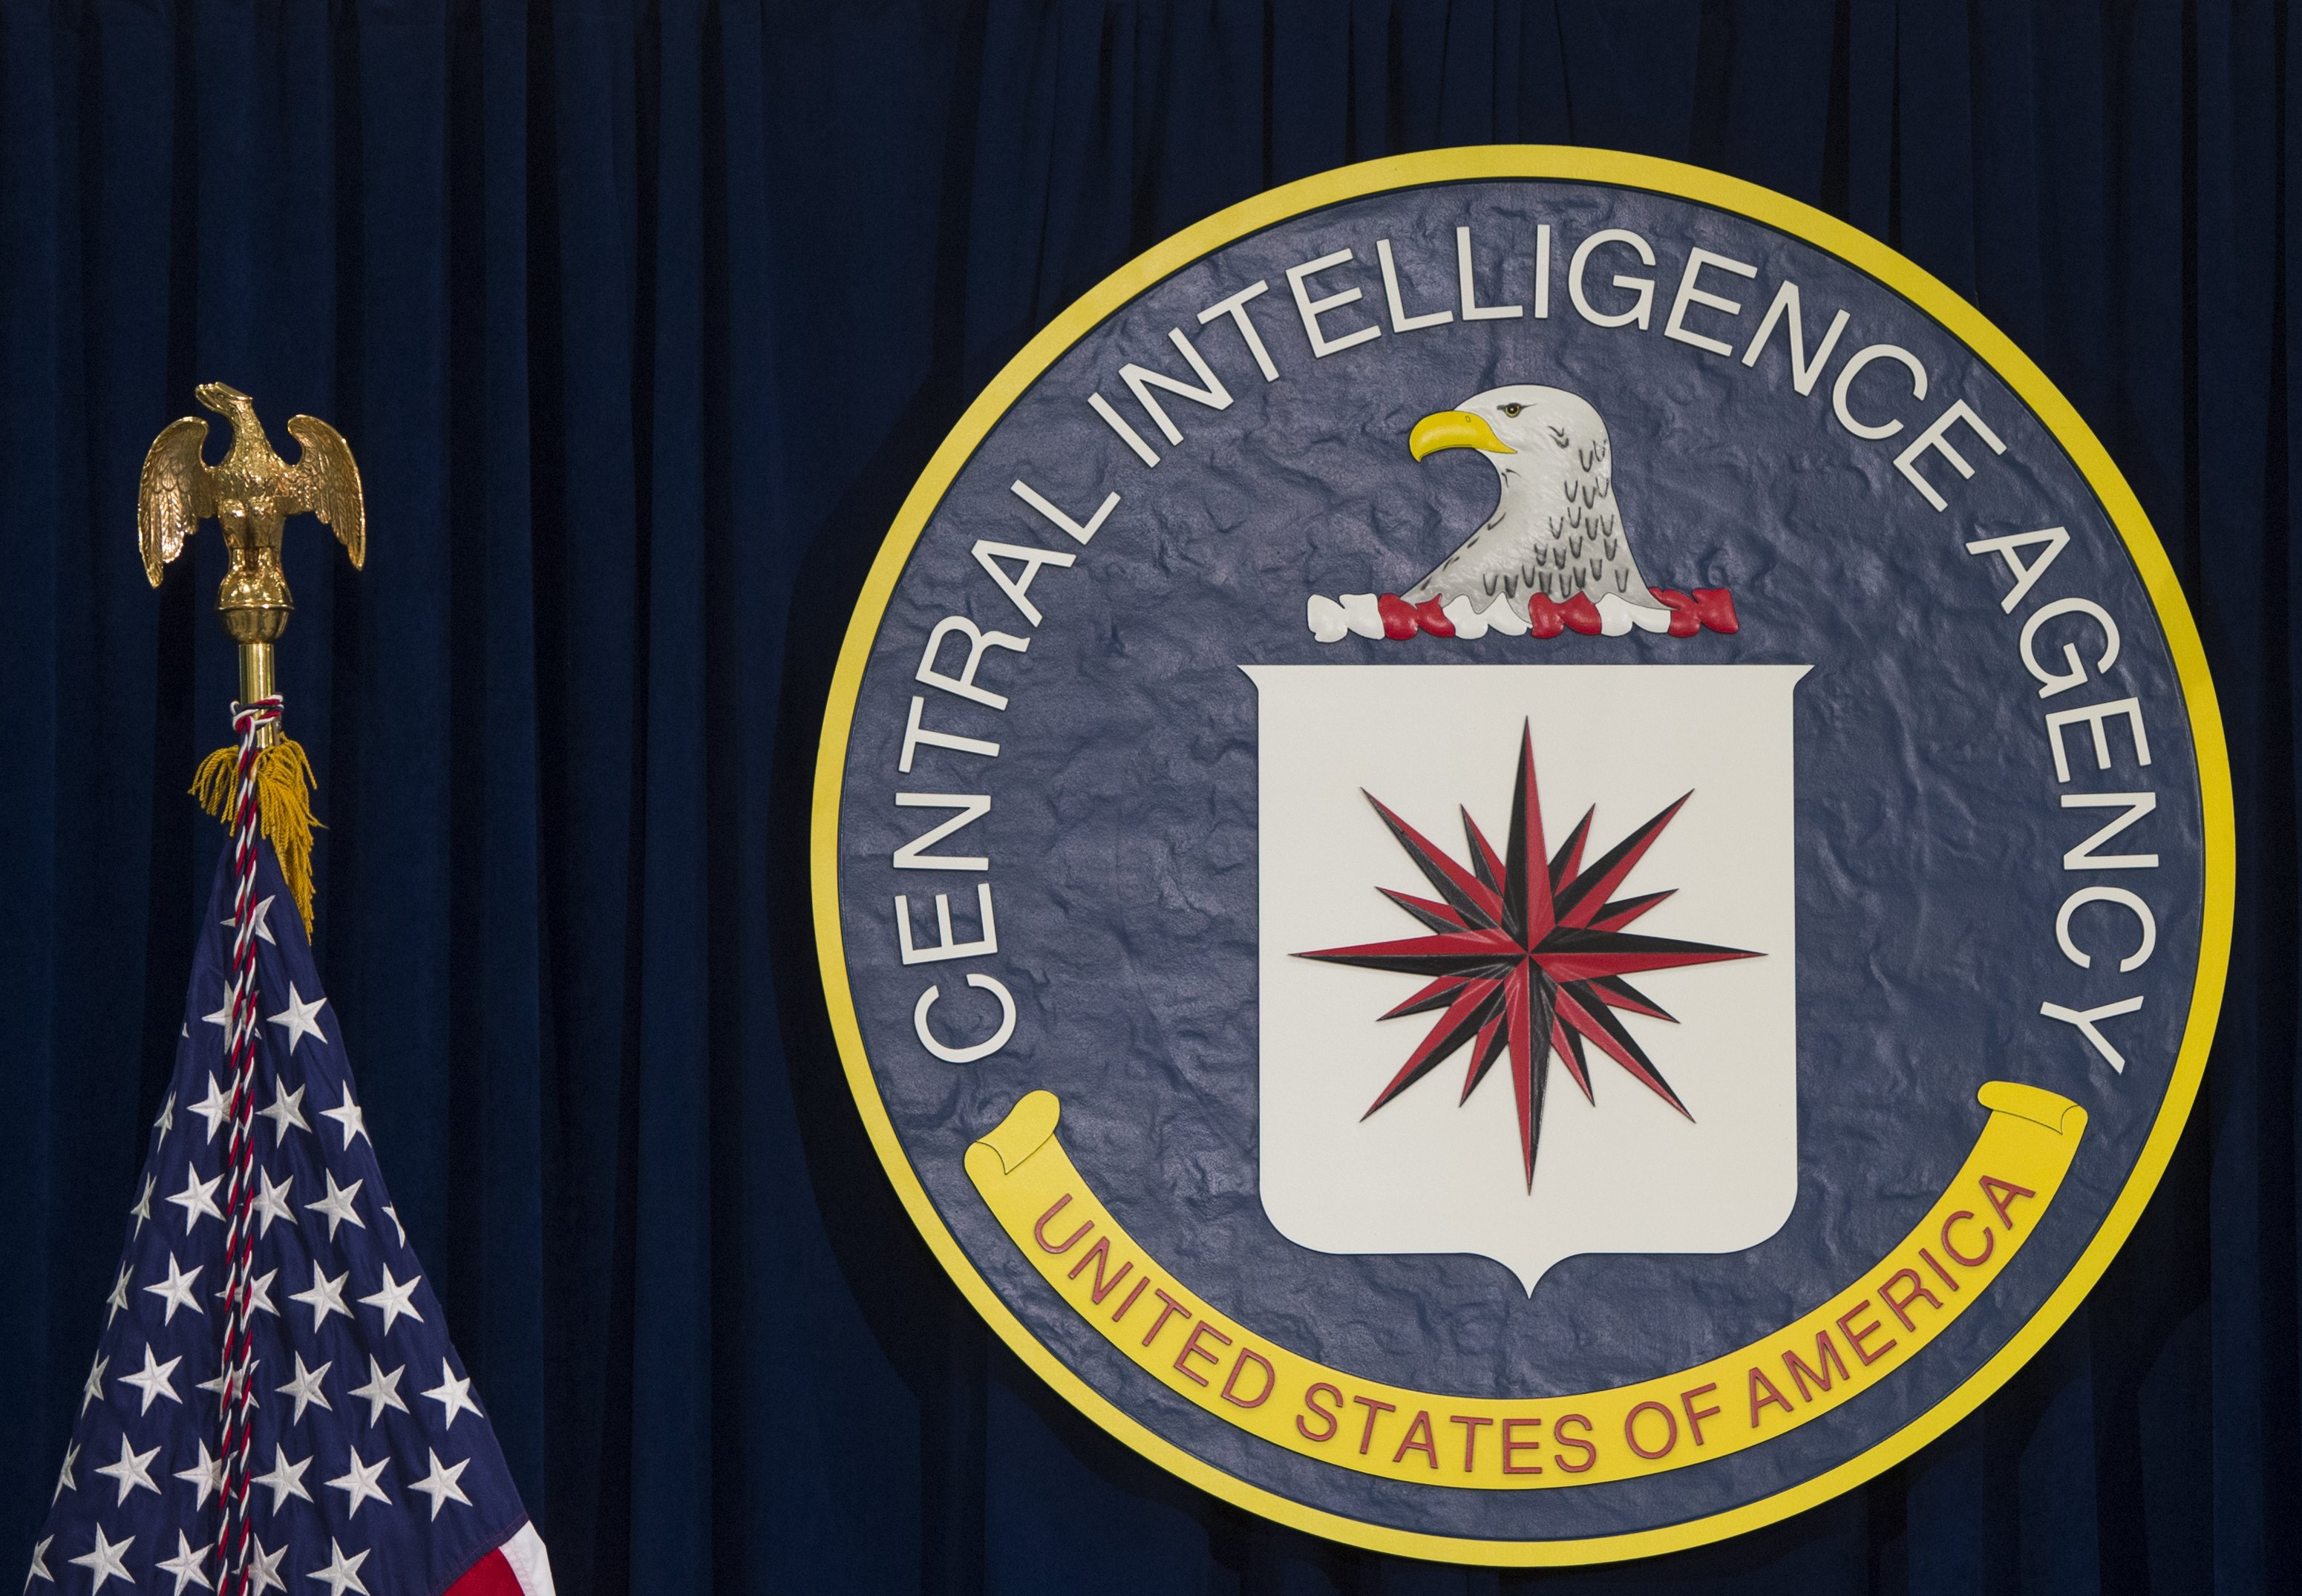 The logo of the Central Intelligence Agency (CIA) is seen at CIA Headquarters in Langley, Virginia, April 13, 2016.